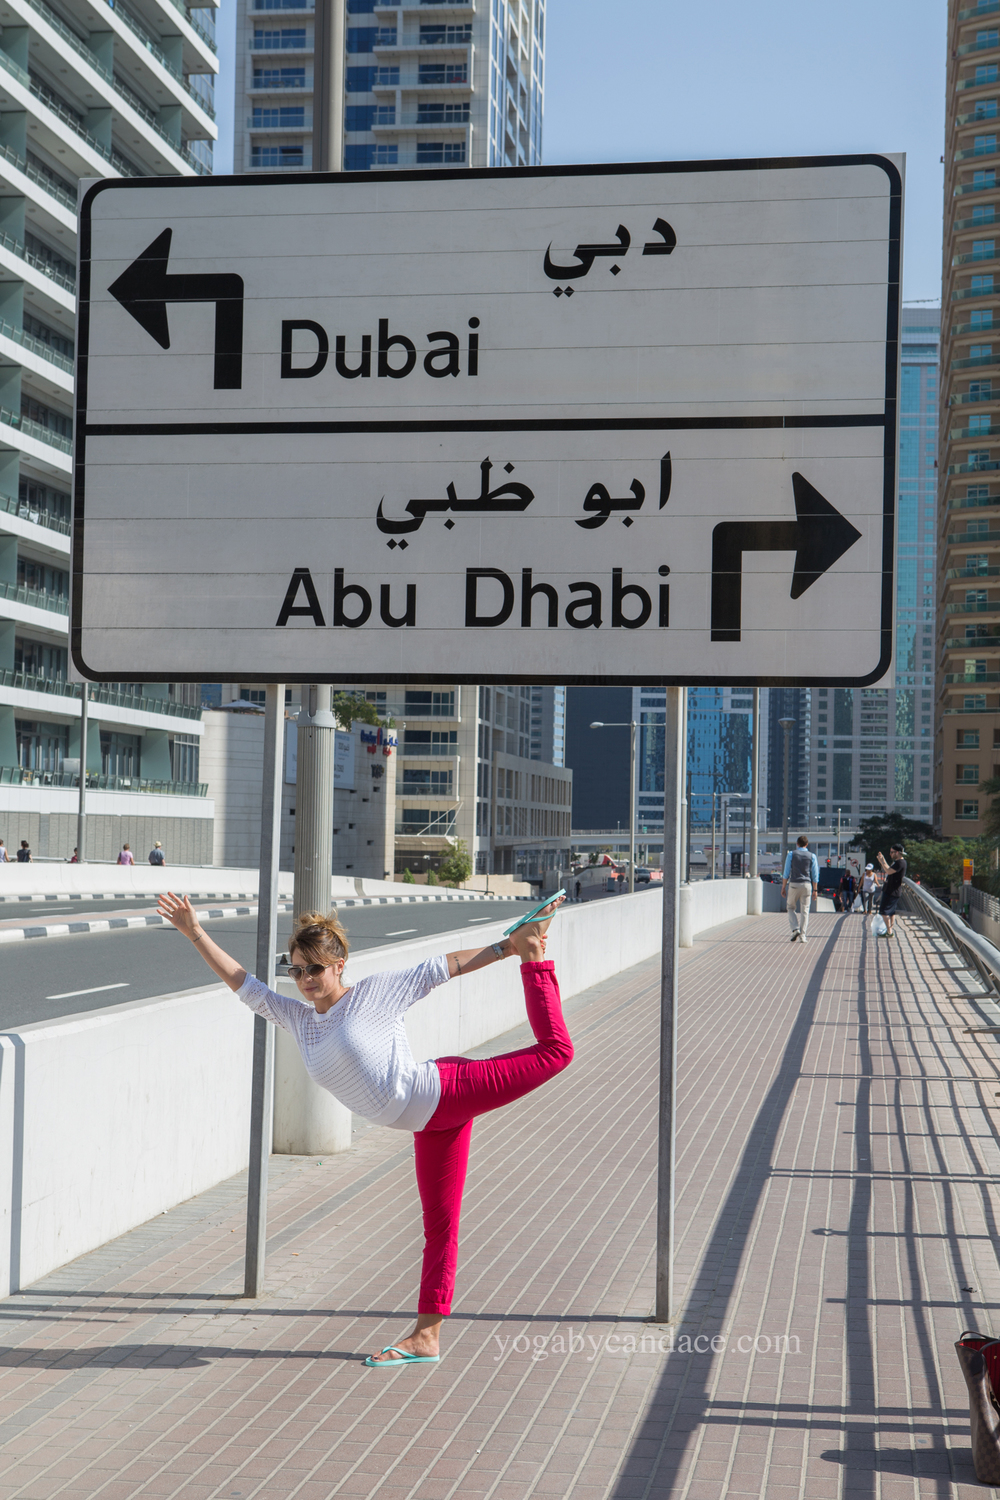 Yoga in Dubai  Wearing:  sunglasses ,  j brand pants , hard tail top ( diff color ).